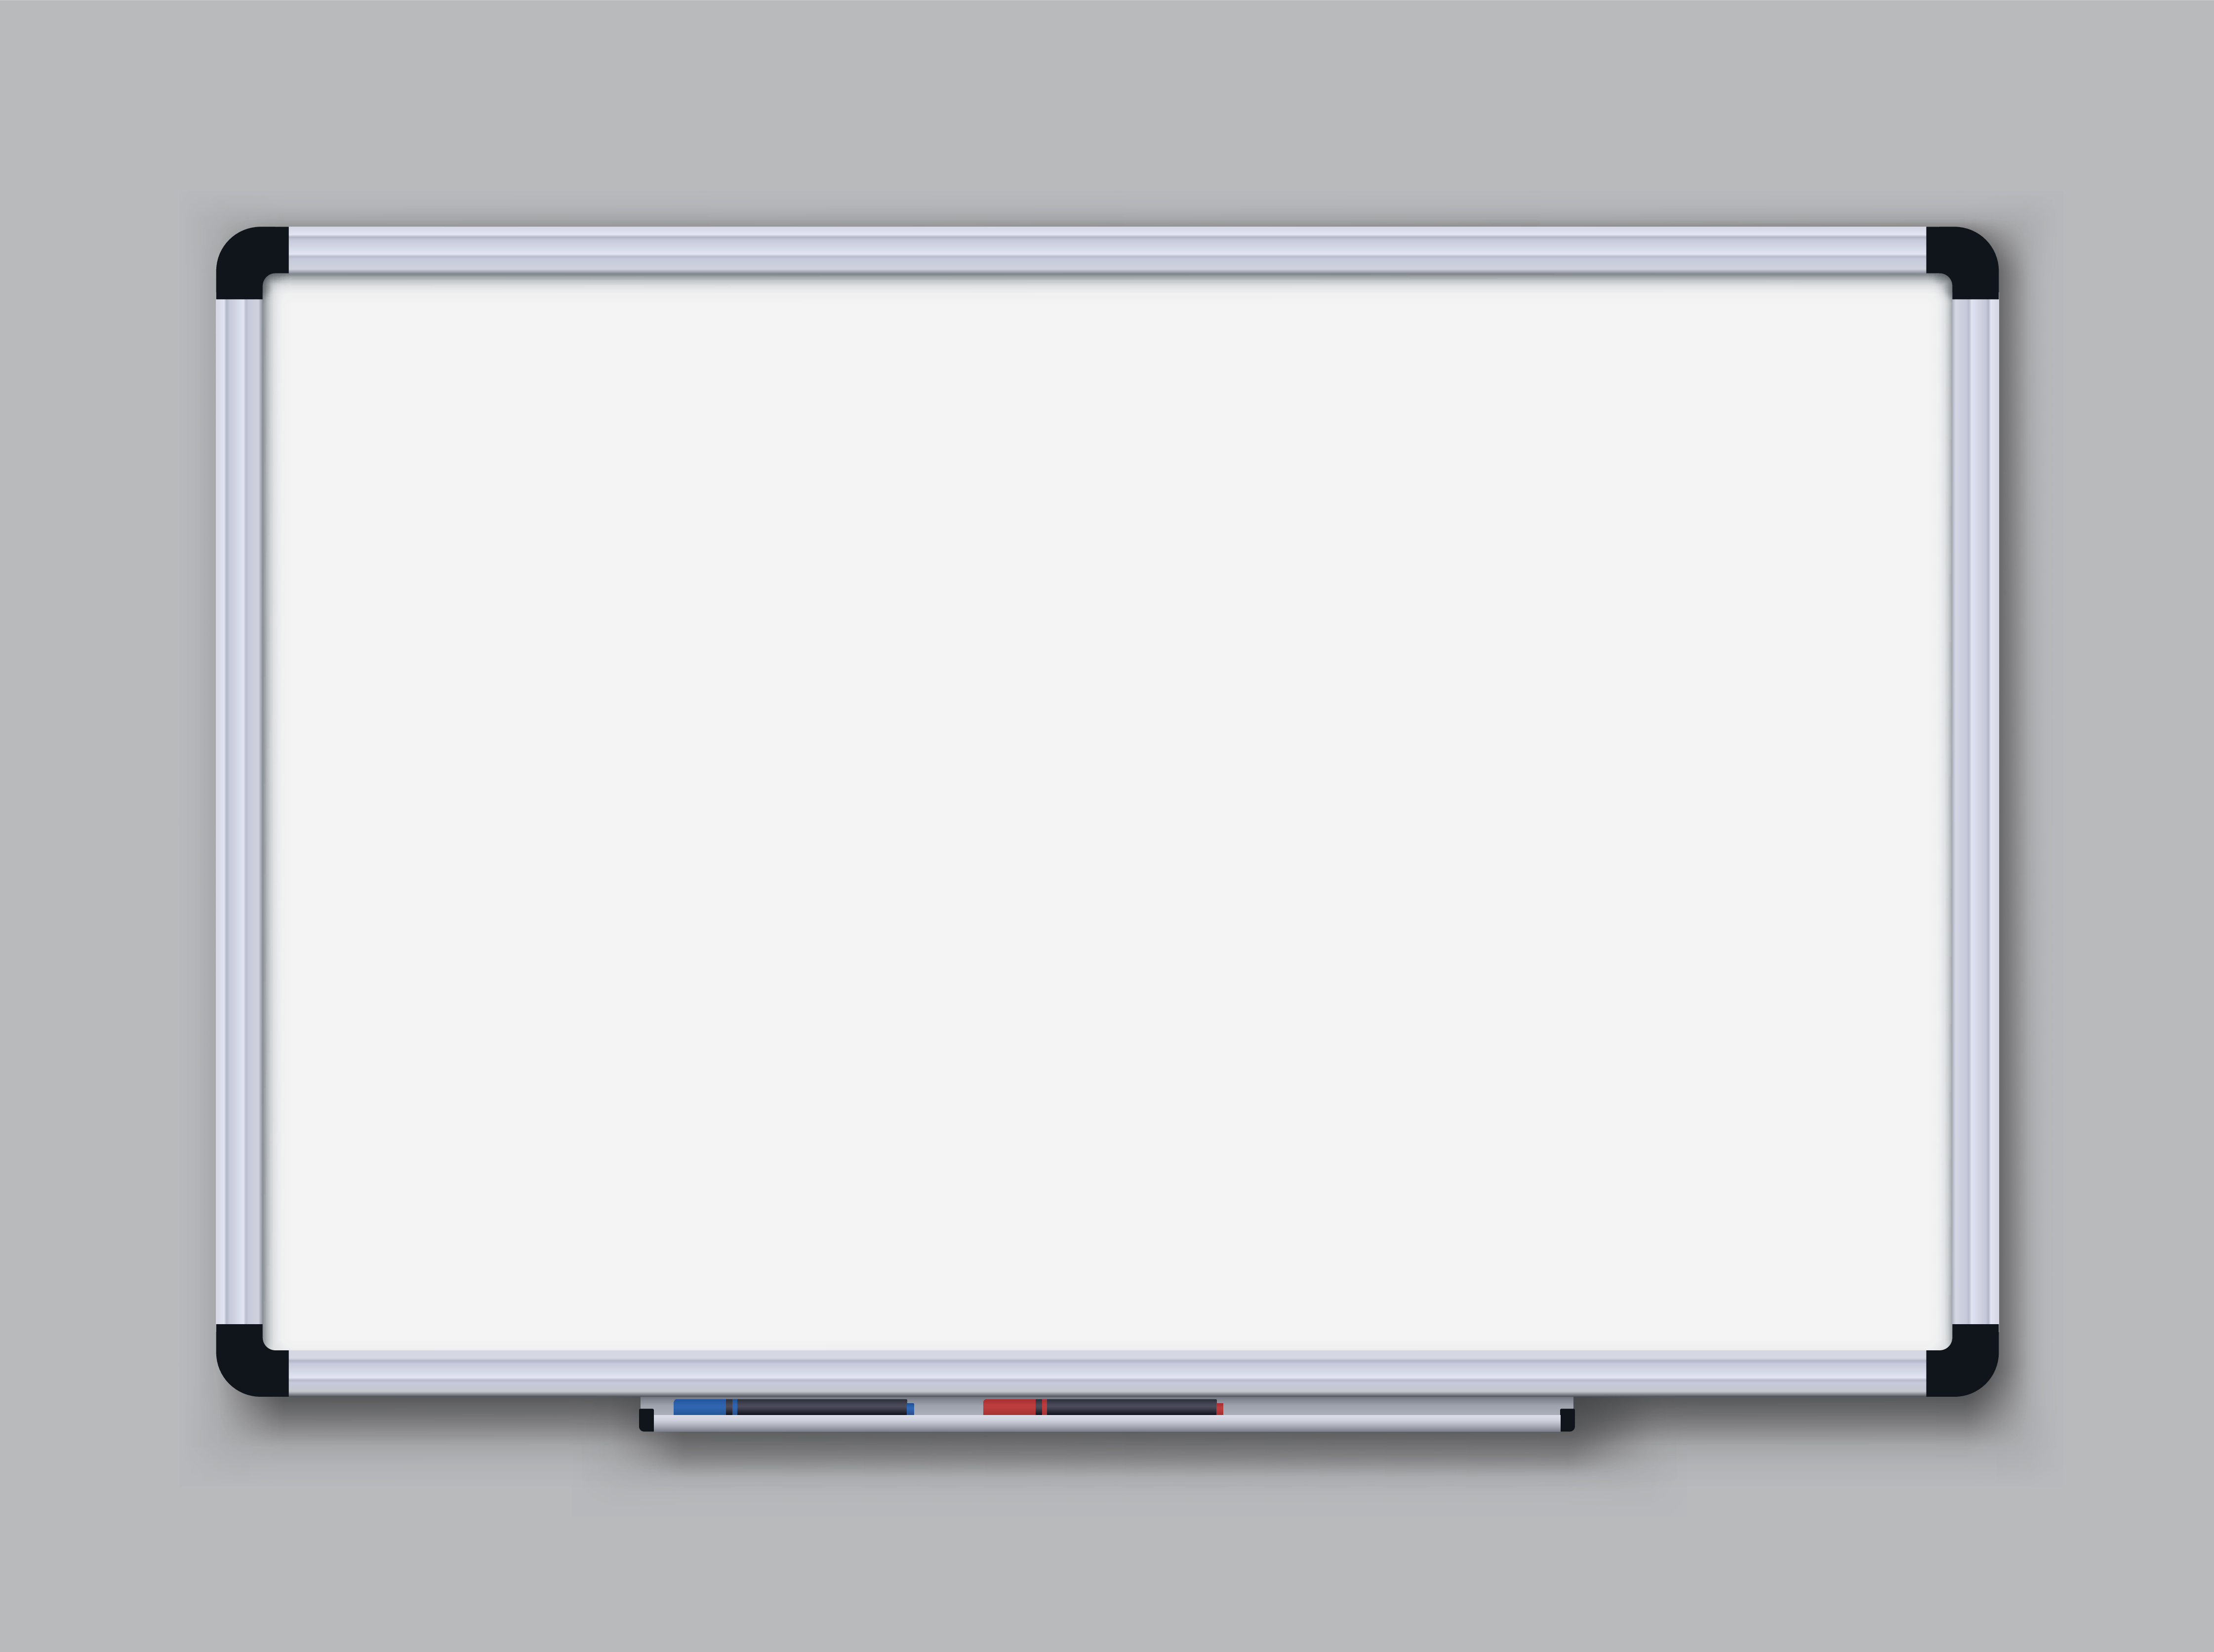 7 Reasons to Hang a White Board in Your Assisted Living Apartment